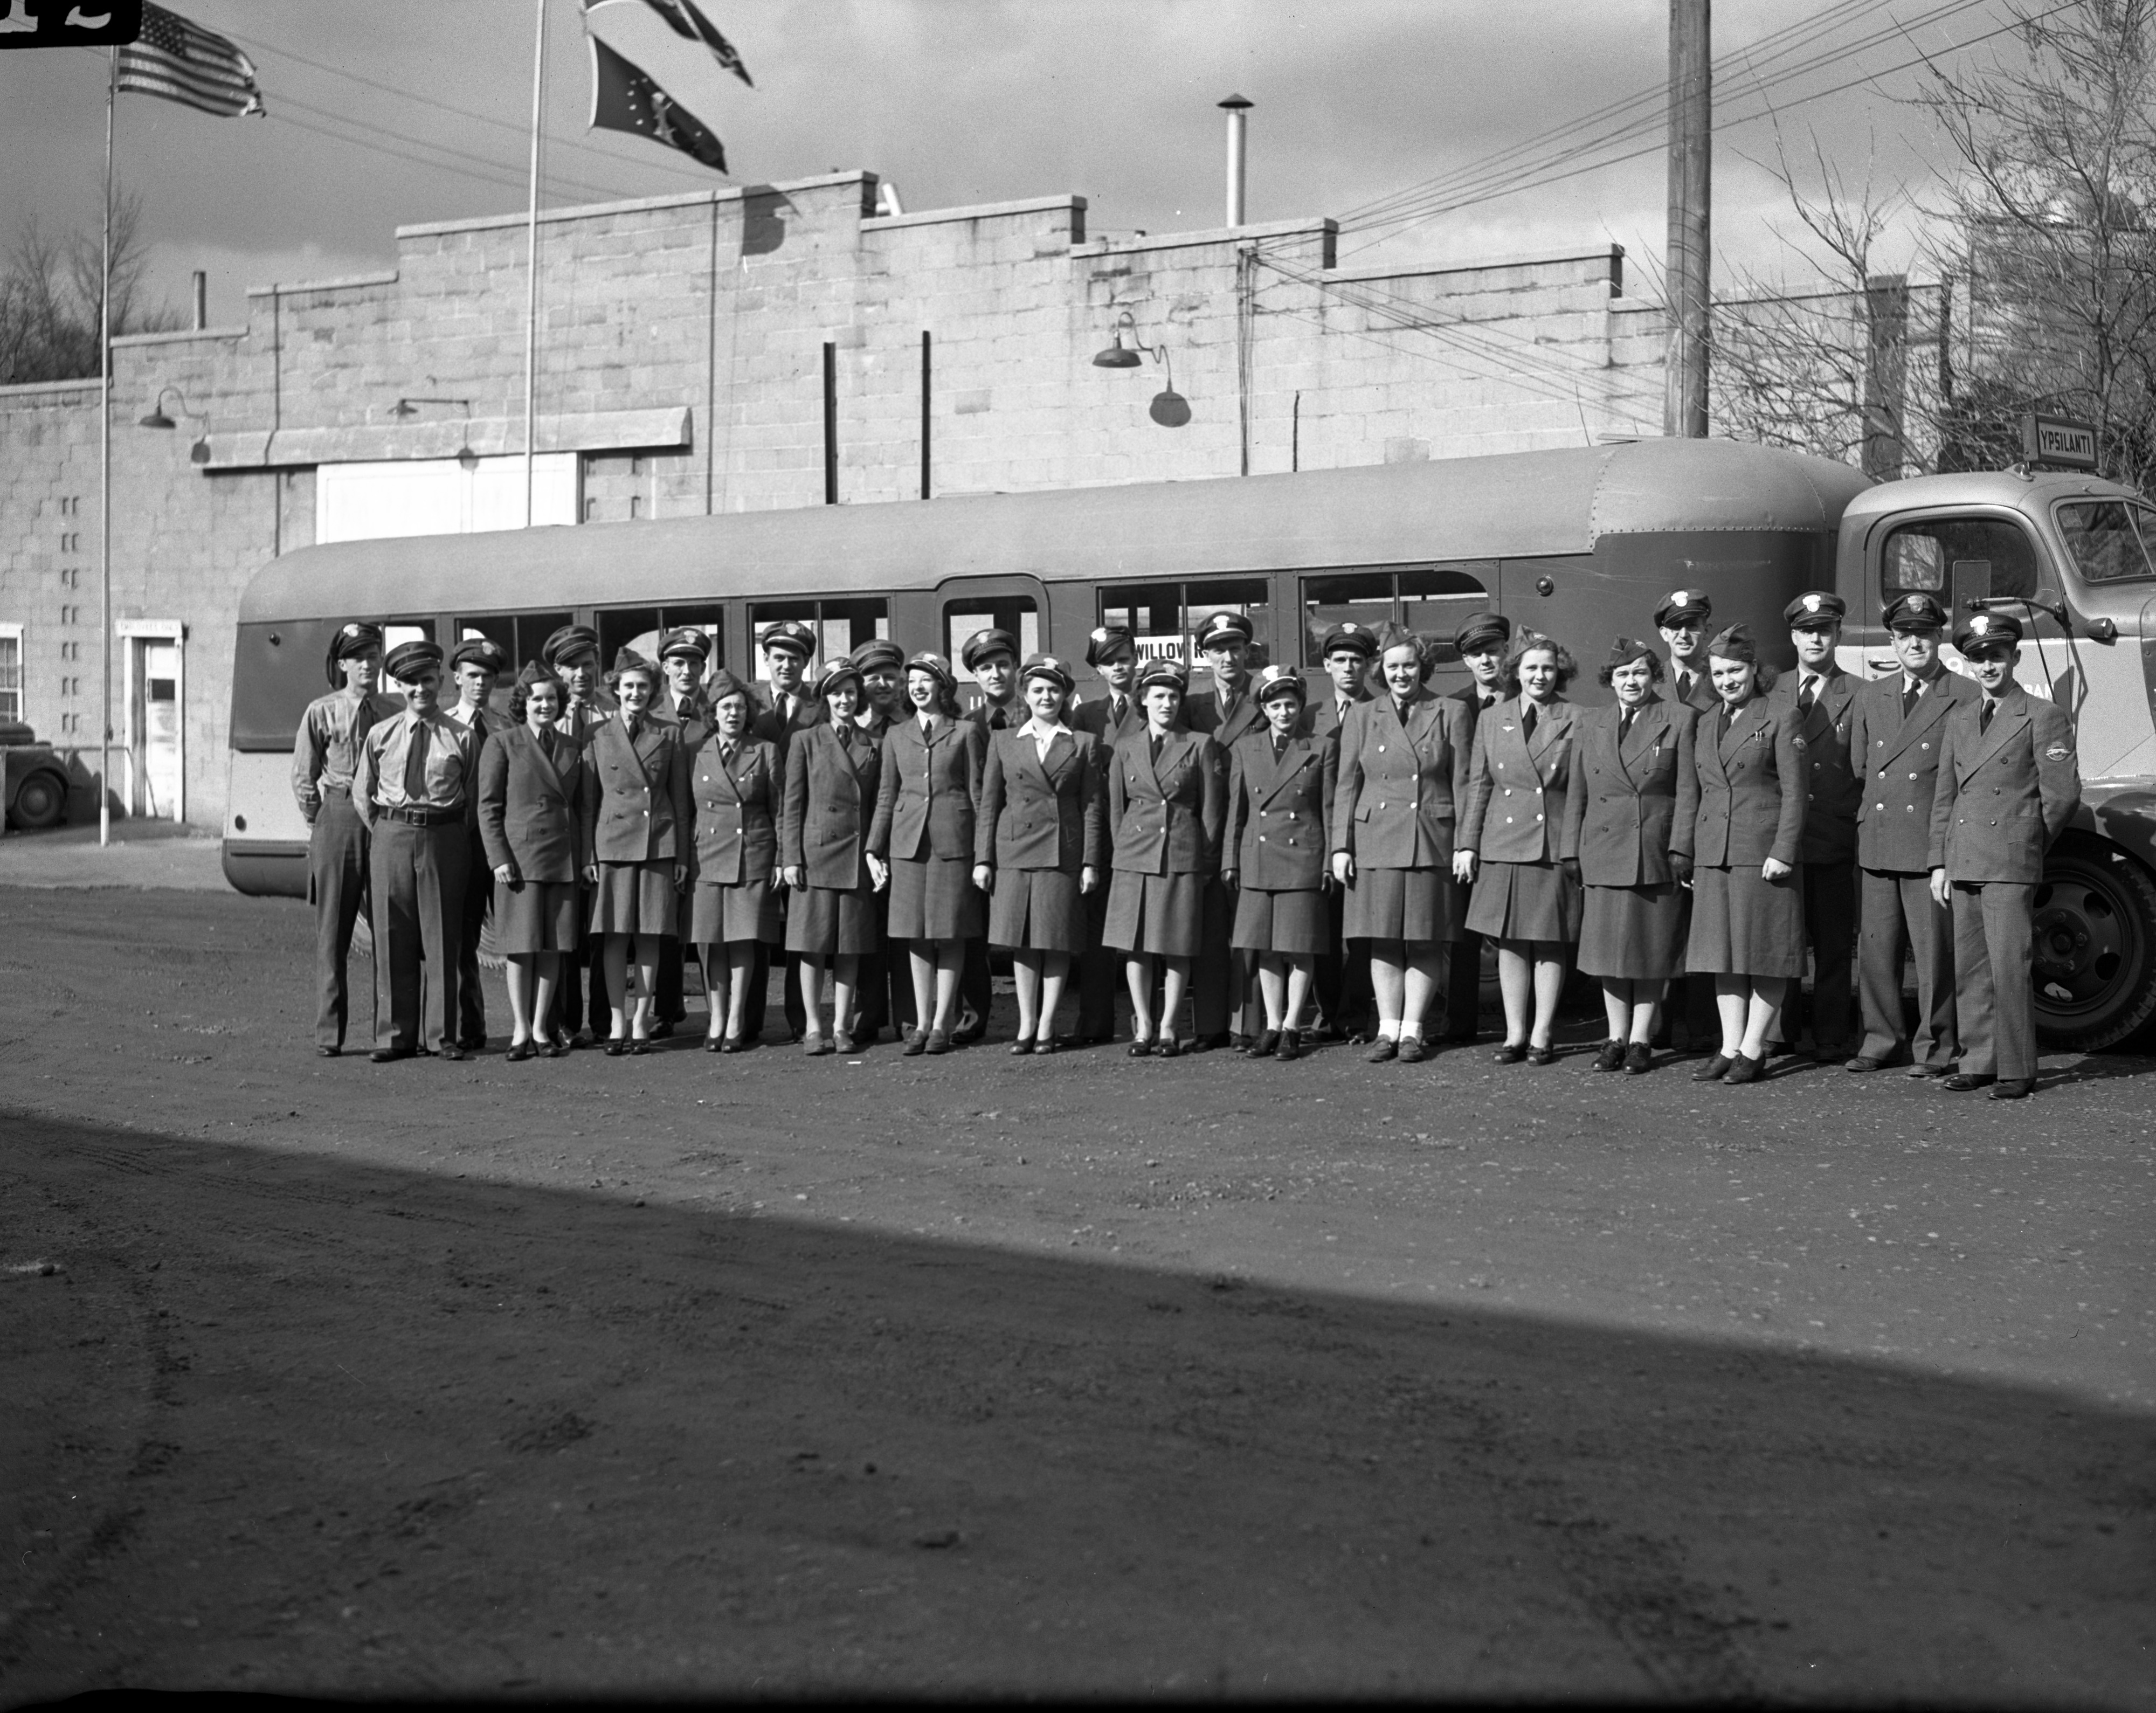 Women Bus Drivers Join Ranks of Greyhound Drivers To Willow Run Bomber Plant, November 1943 image